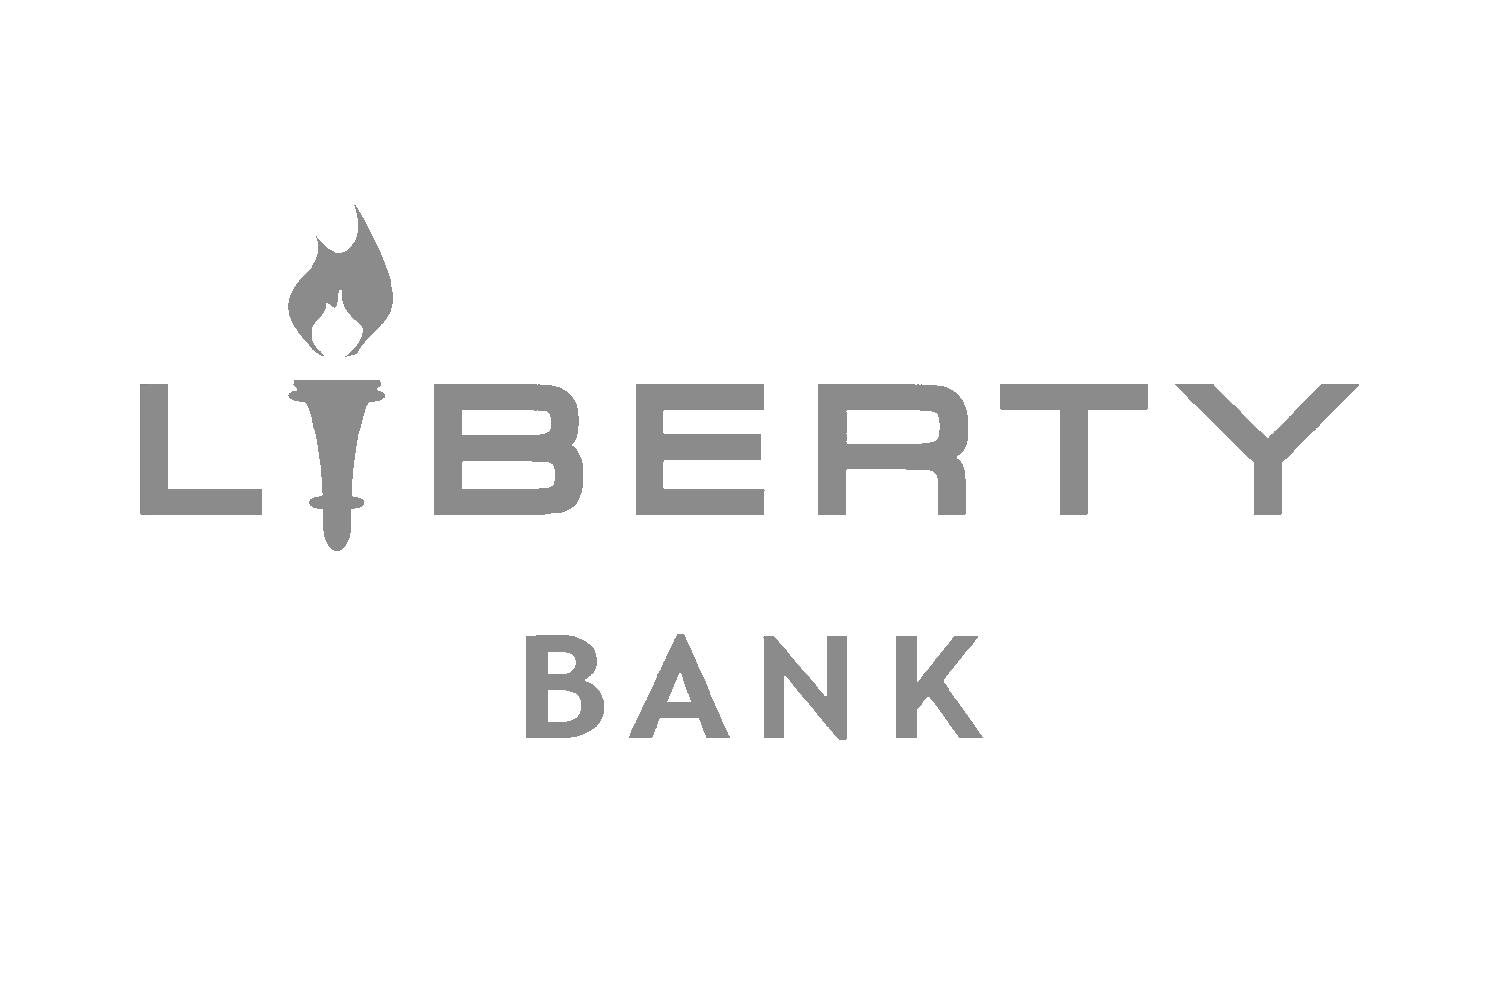 Liberty_Bank.png